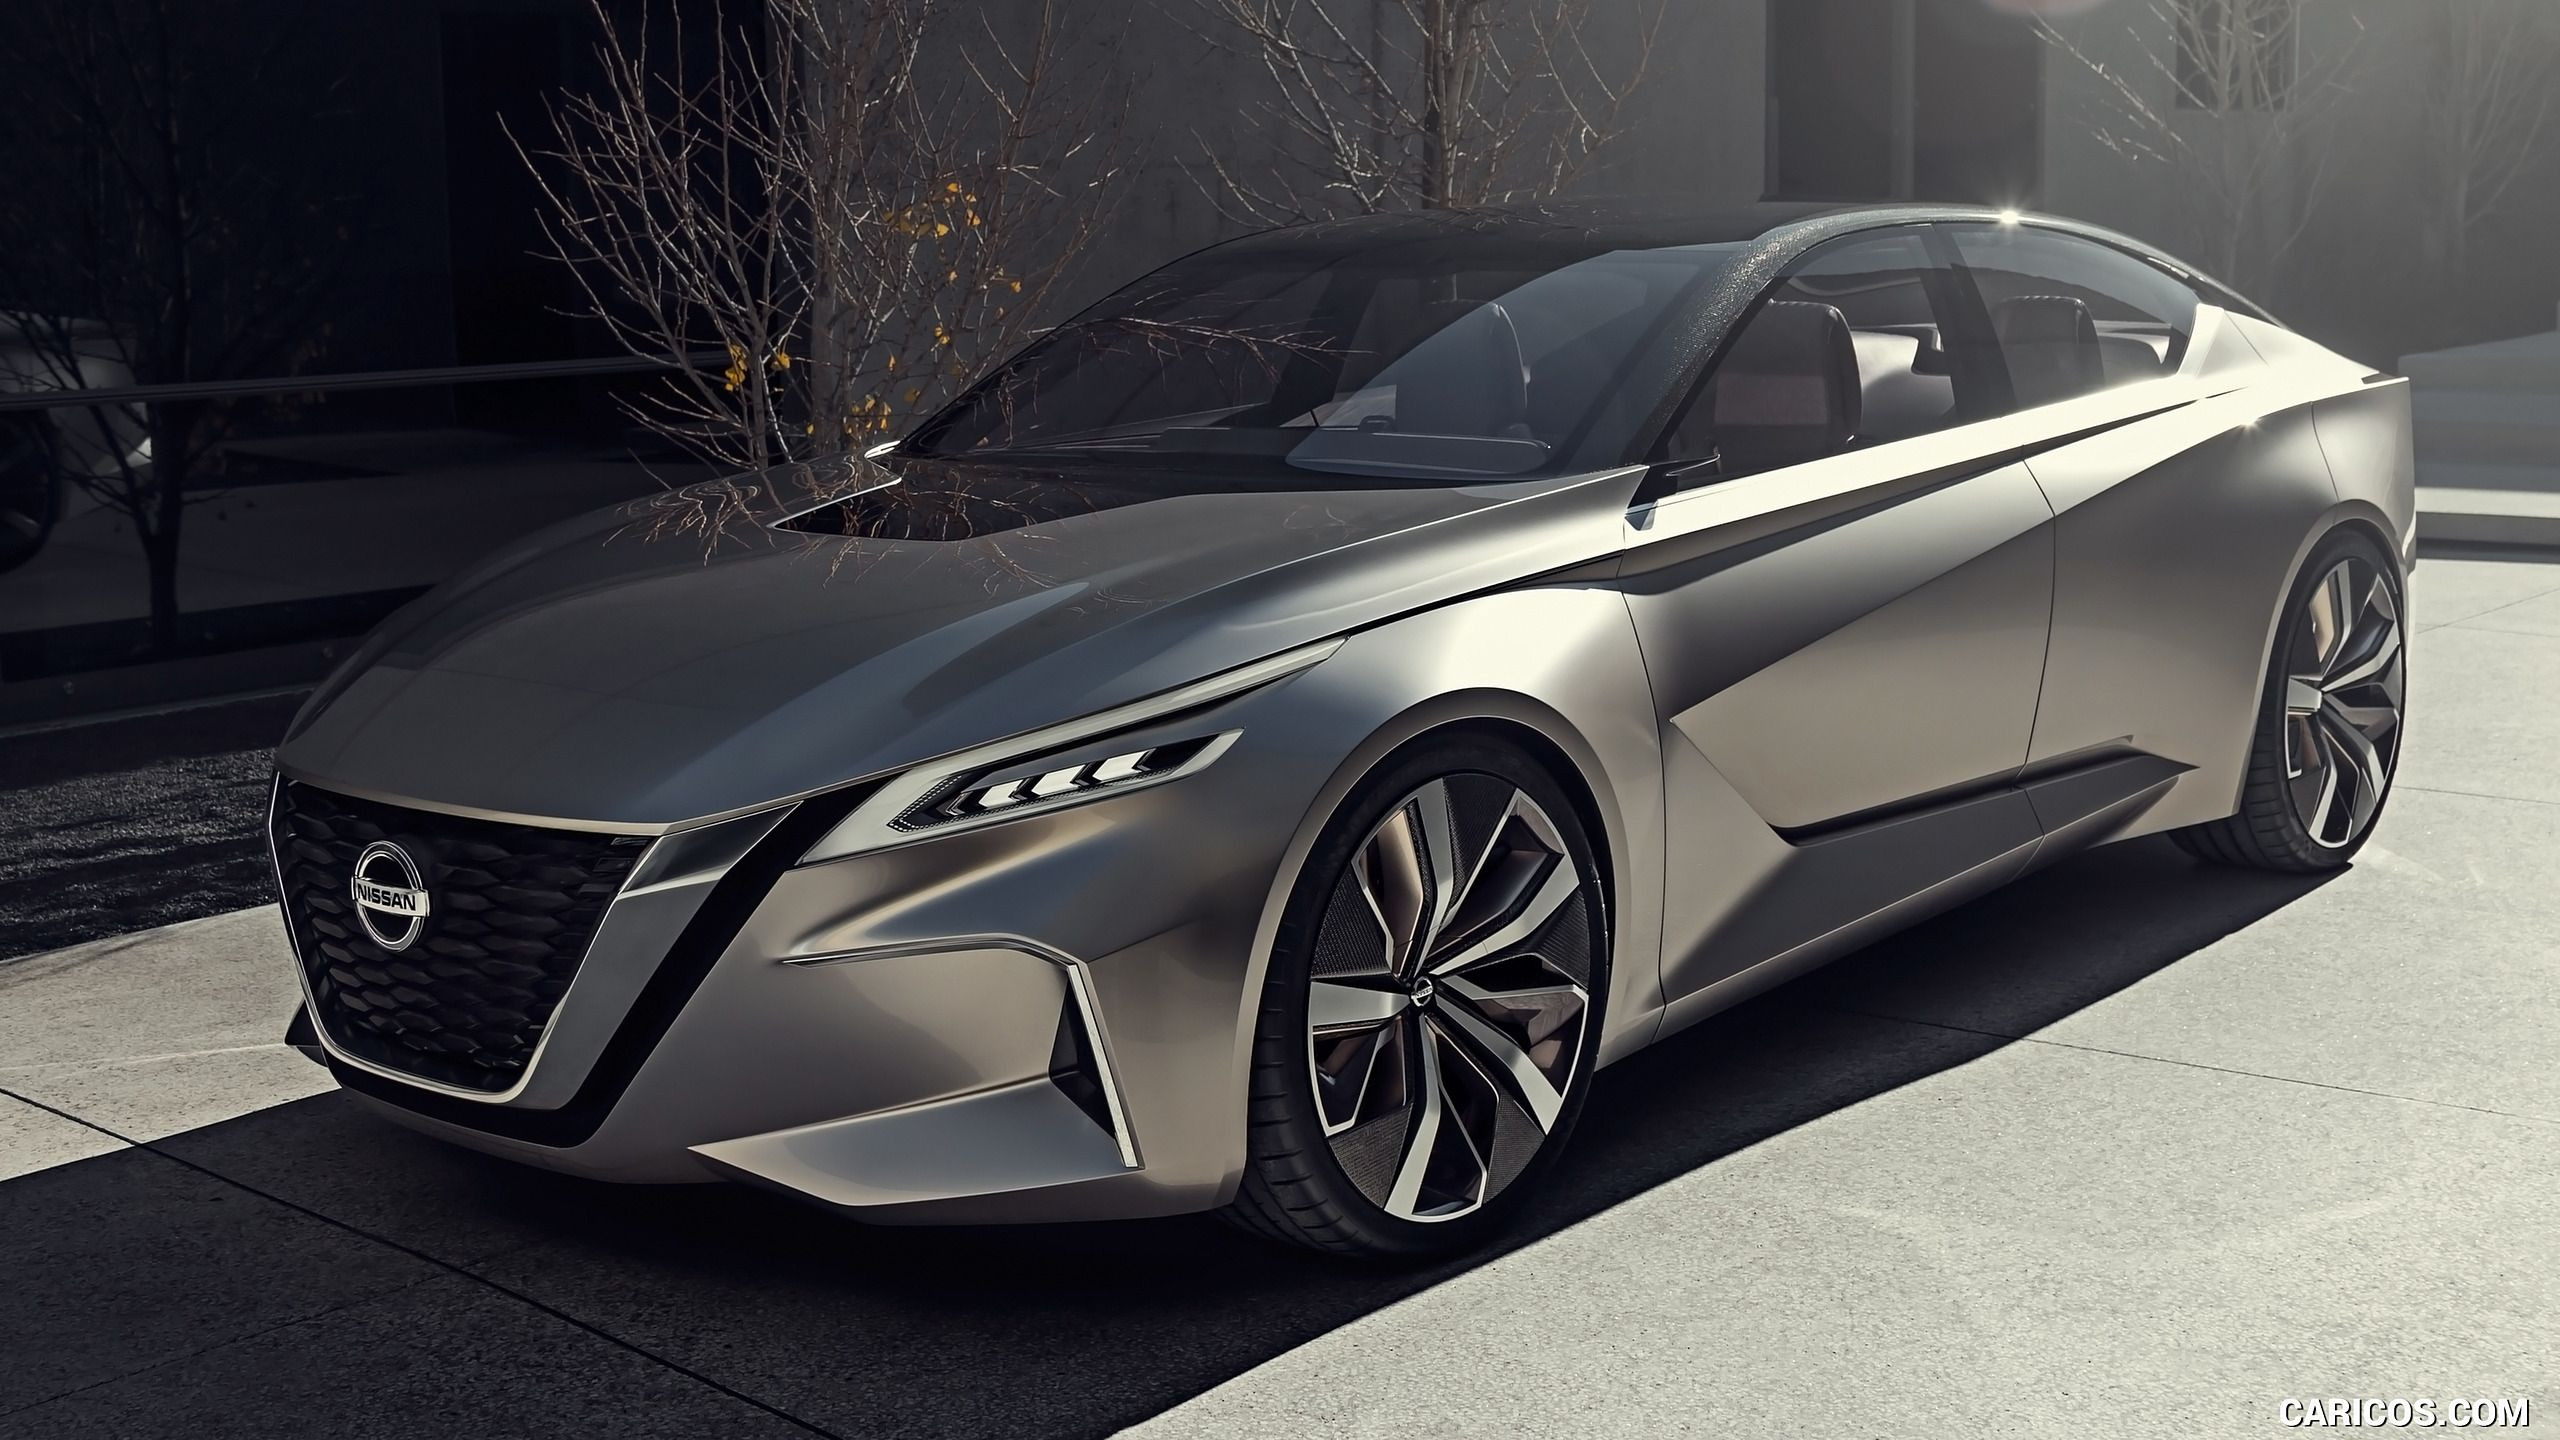 2020 Nissan Altima 2017 Nissan Vmotion 2 0 Concept Wallpaper Carros